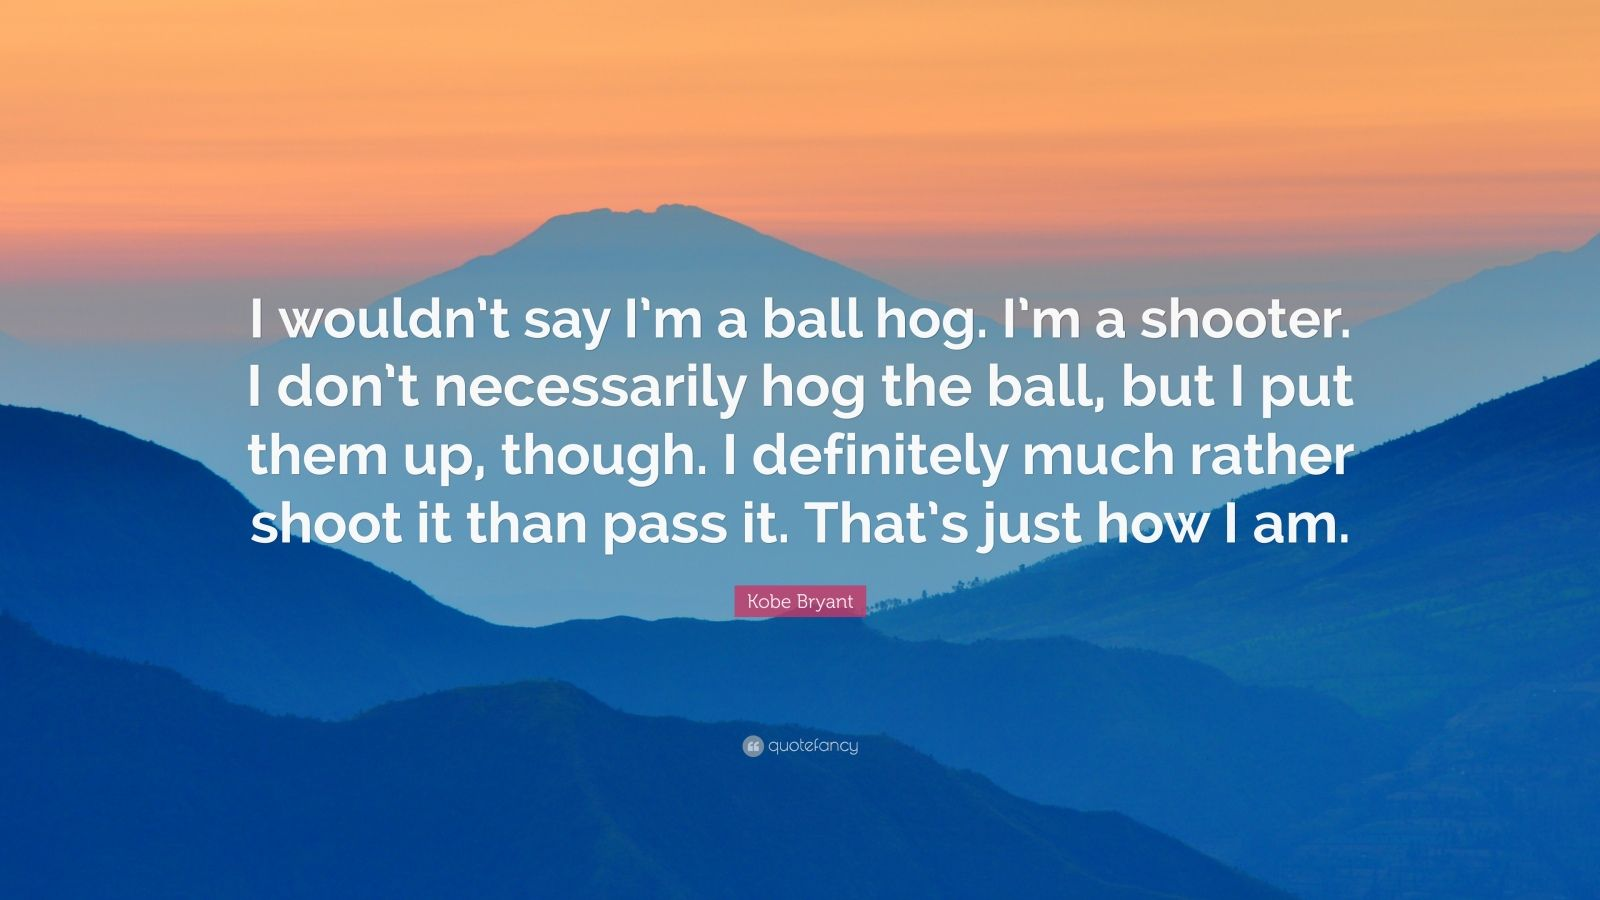 """Kobe Bryant Quote: """"I wouldn't say I'm a ball hog. I'm a shooter. I don't necessarily hog the ball, but I put them up, though. I definitely much rather shoot it than pass it. That's just how I am."""""""